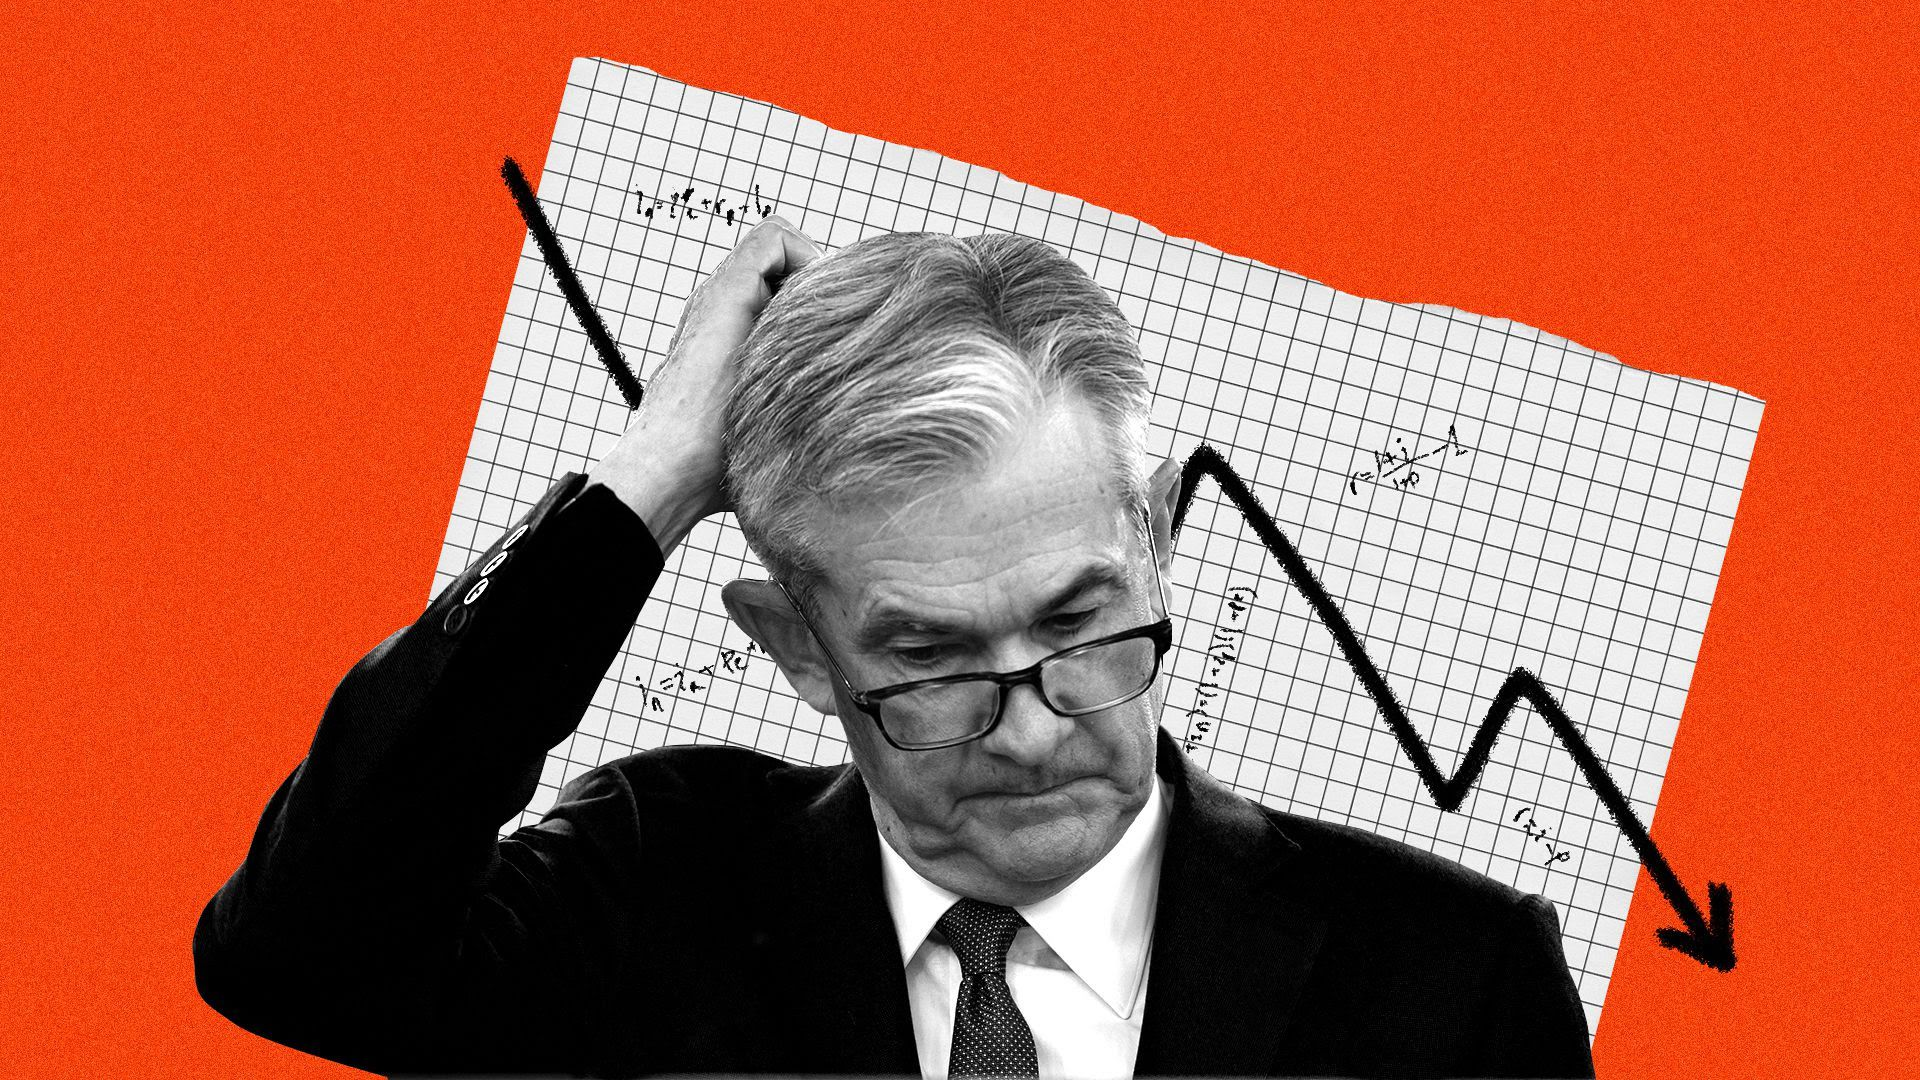 Illustration of Fed Chair Jerome Powell thinking